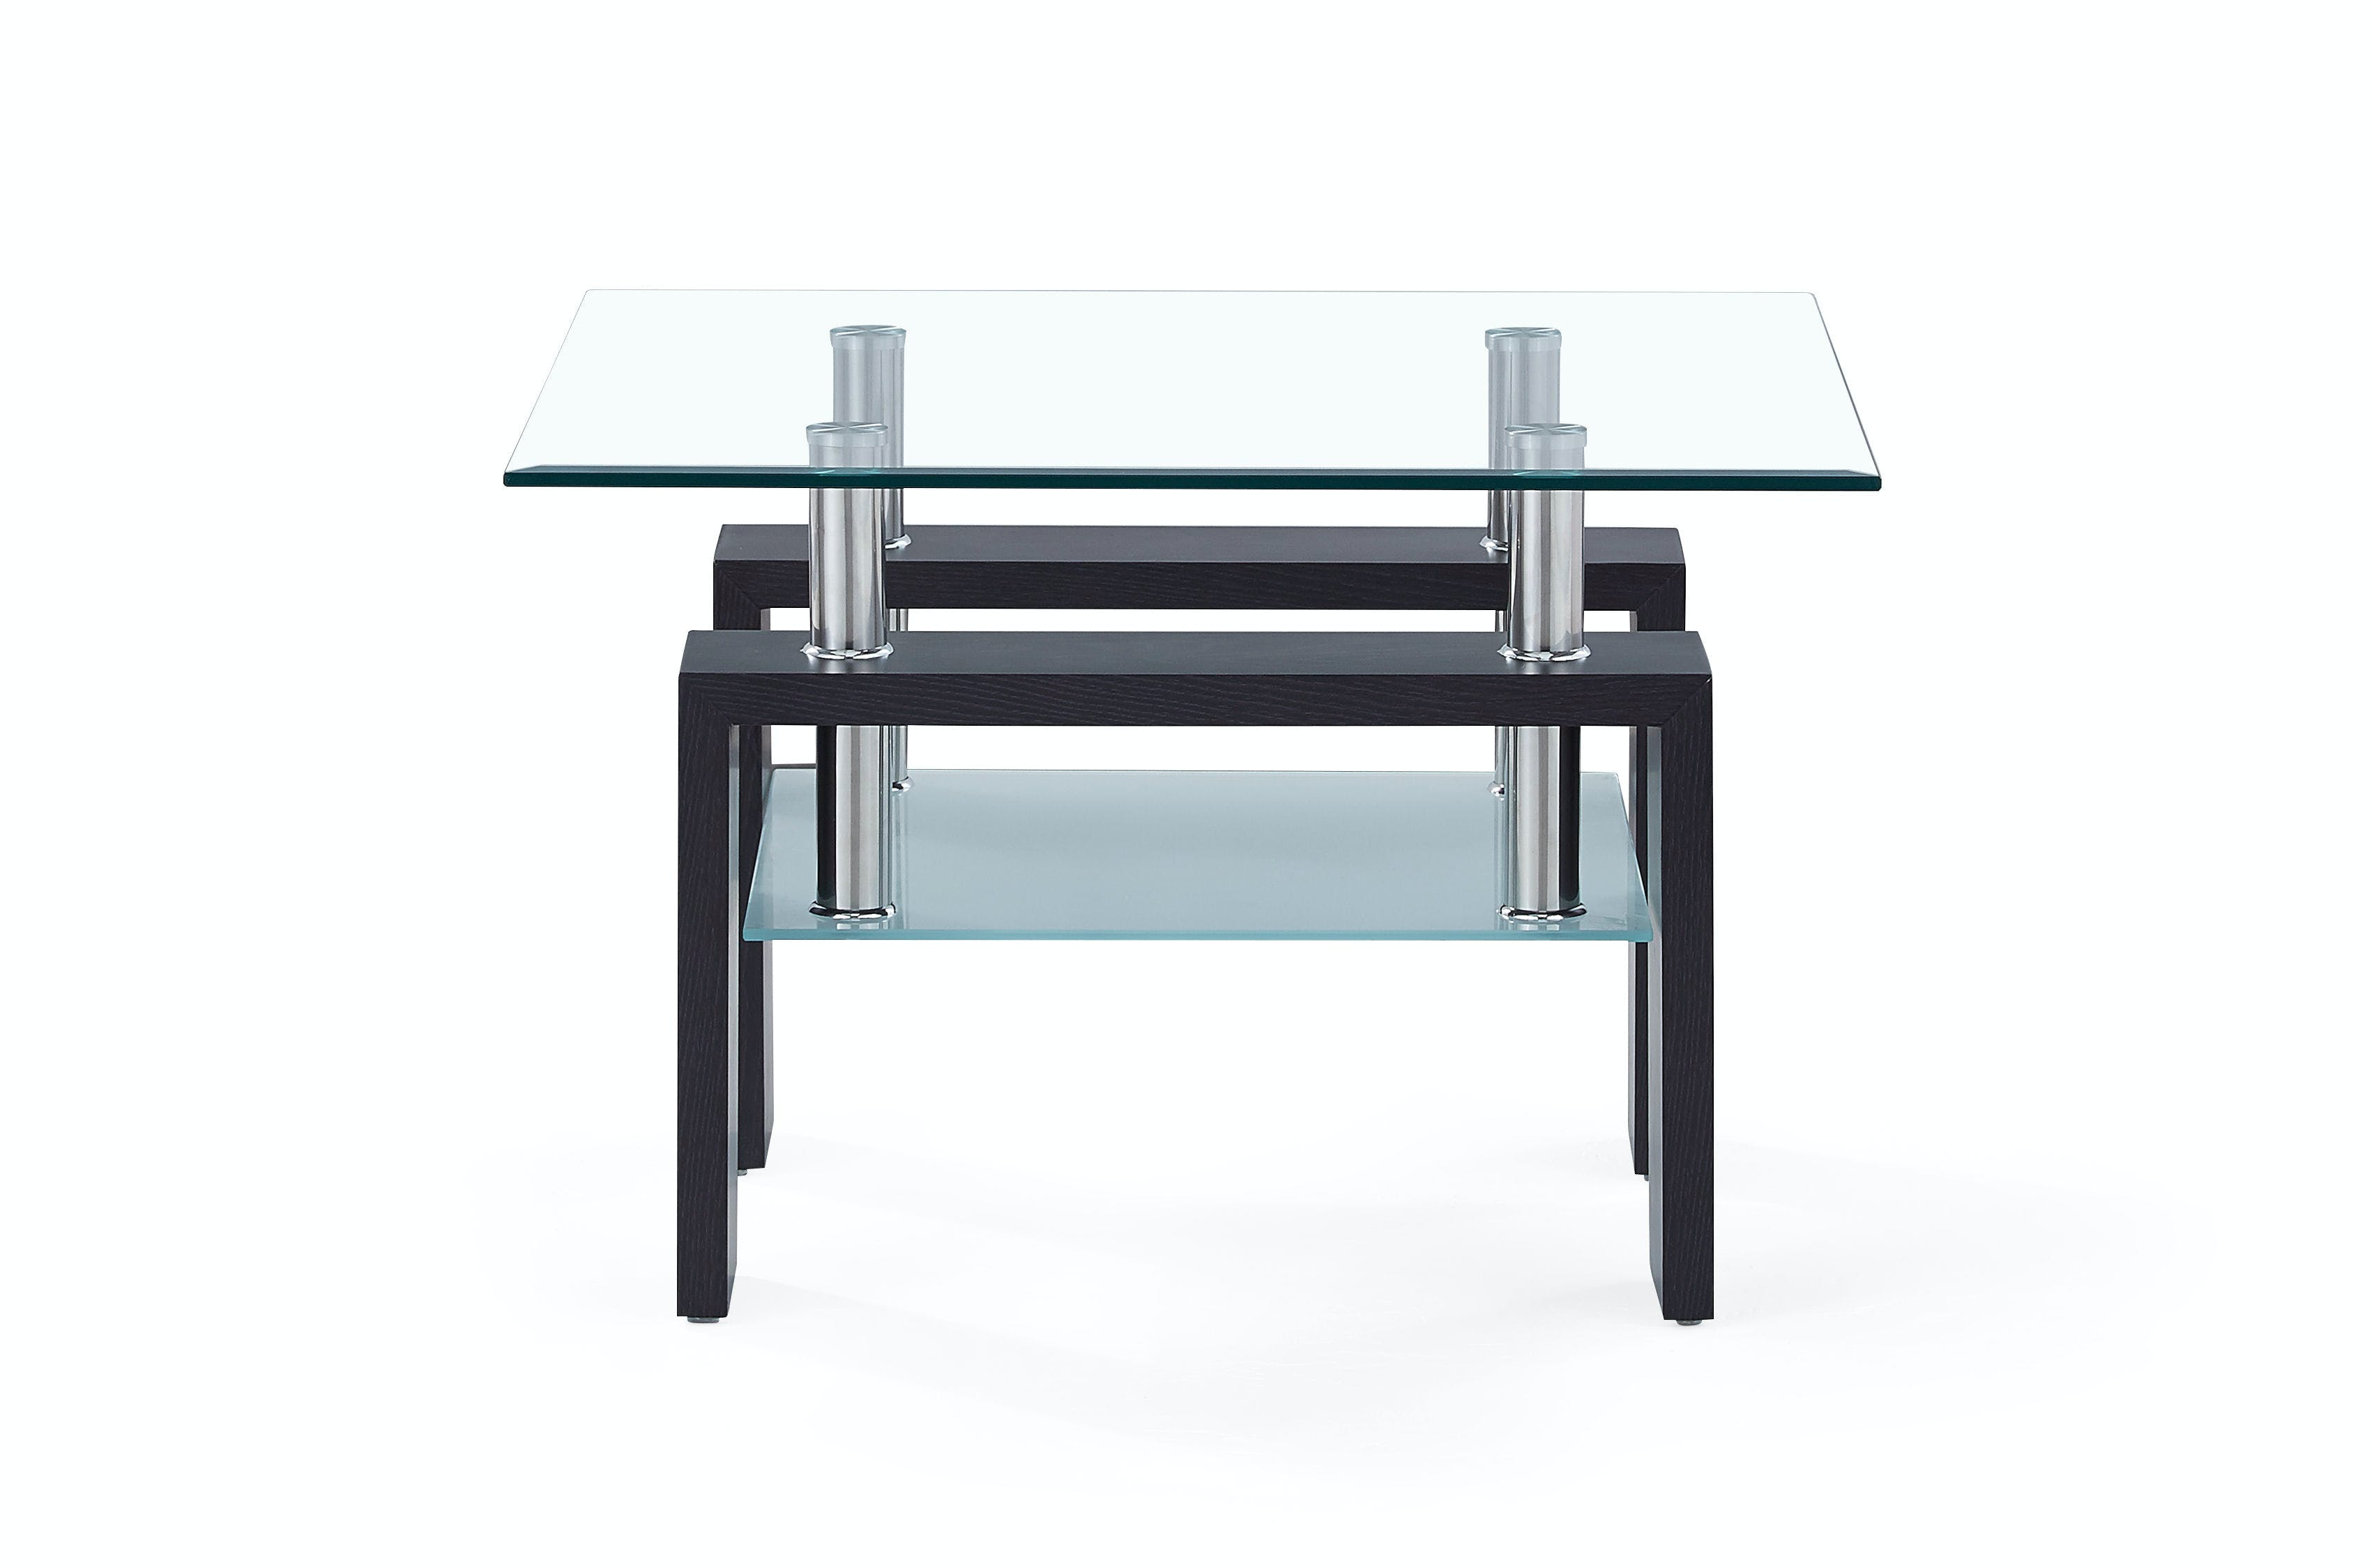 Picture of: Global Furniture Usa Living Room End Table Top Small Glass T646et Tg Bg Furniture Marketplace